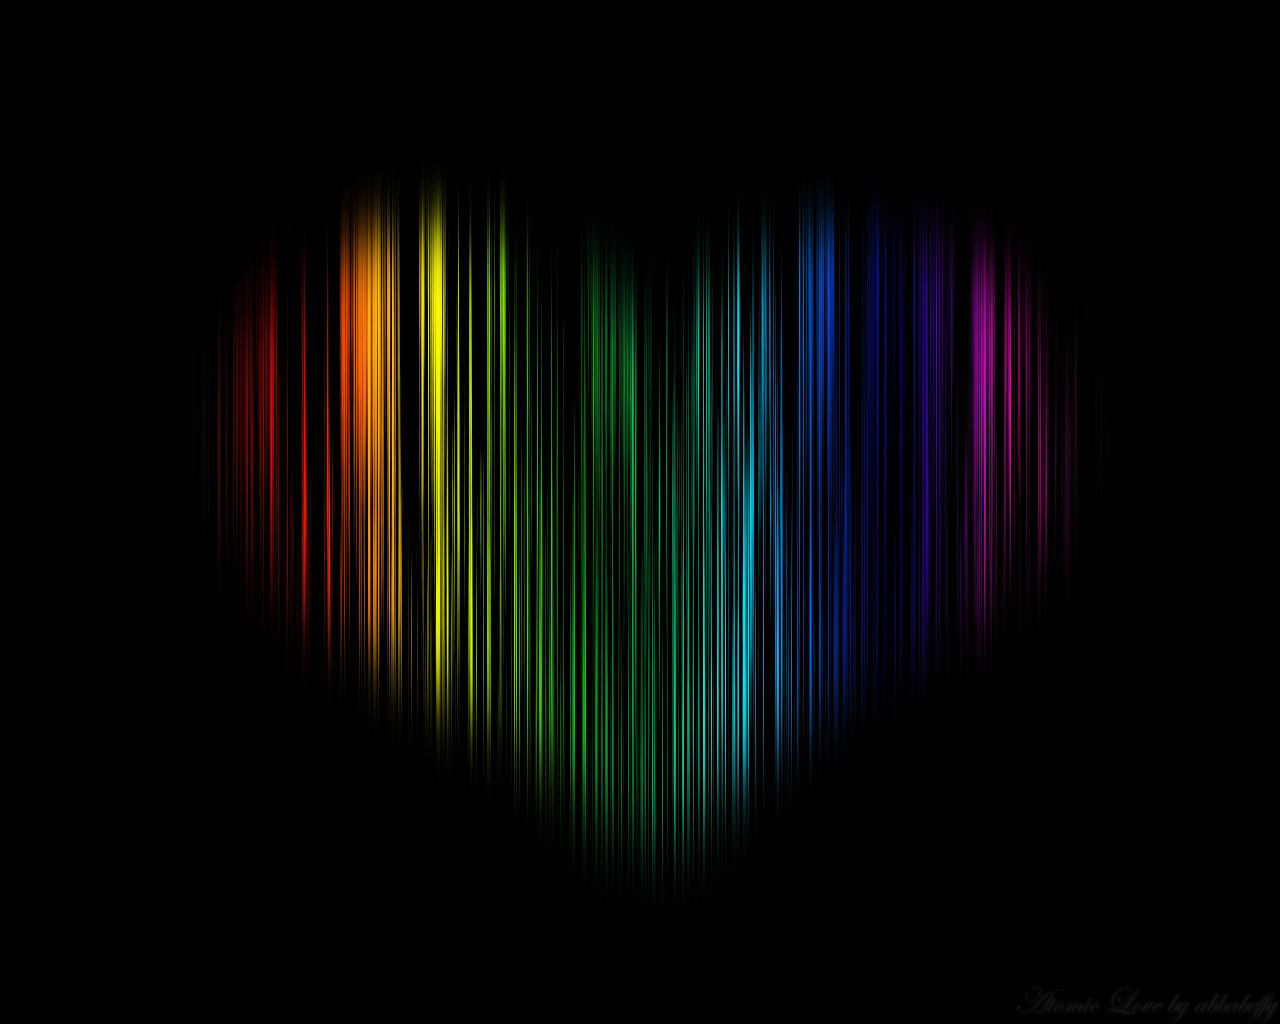 Love Wallpaper With Black Background : Awesome colorful Love Image in Black Background Picture Wallpapers HD Wallpapers Stuff to Buy ...